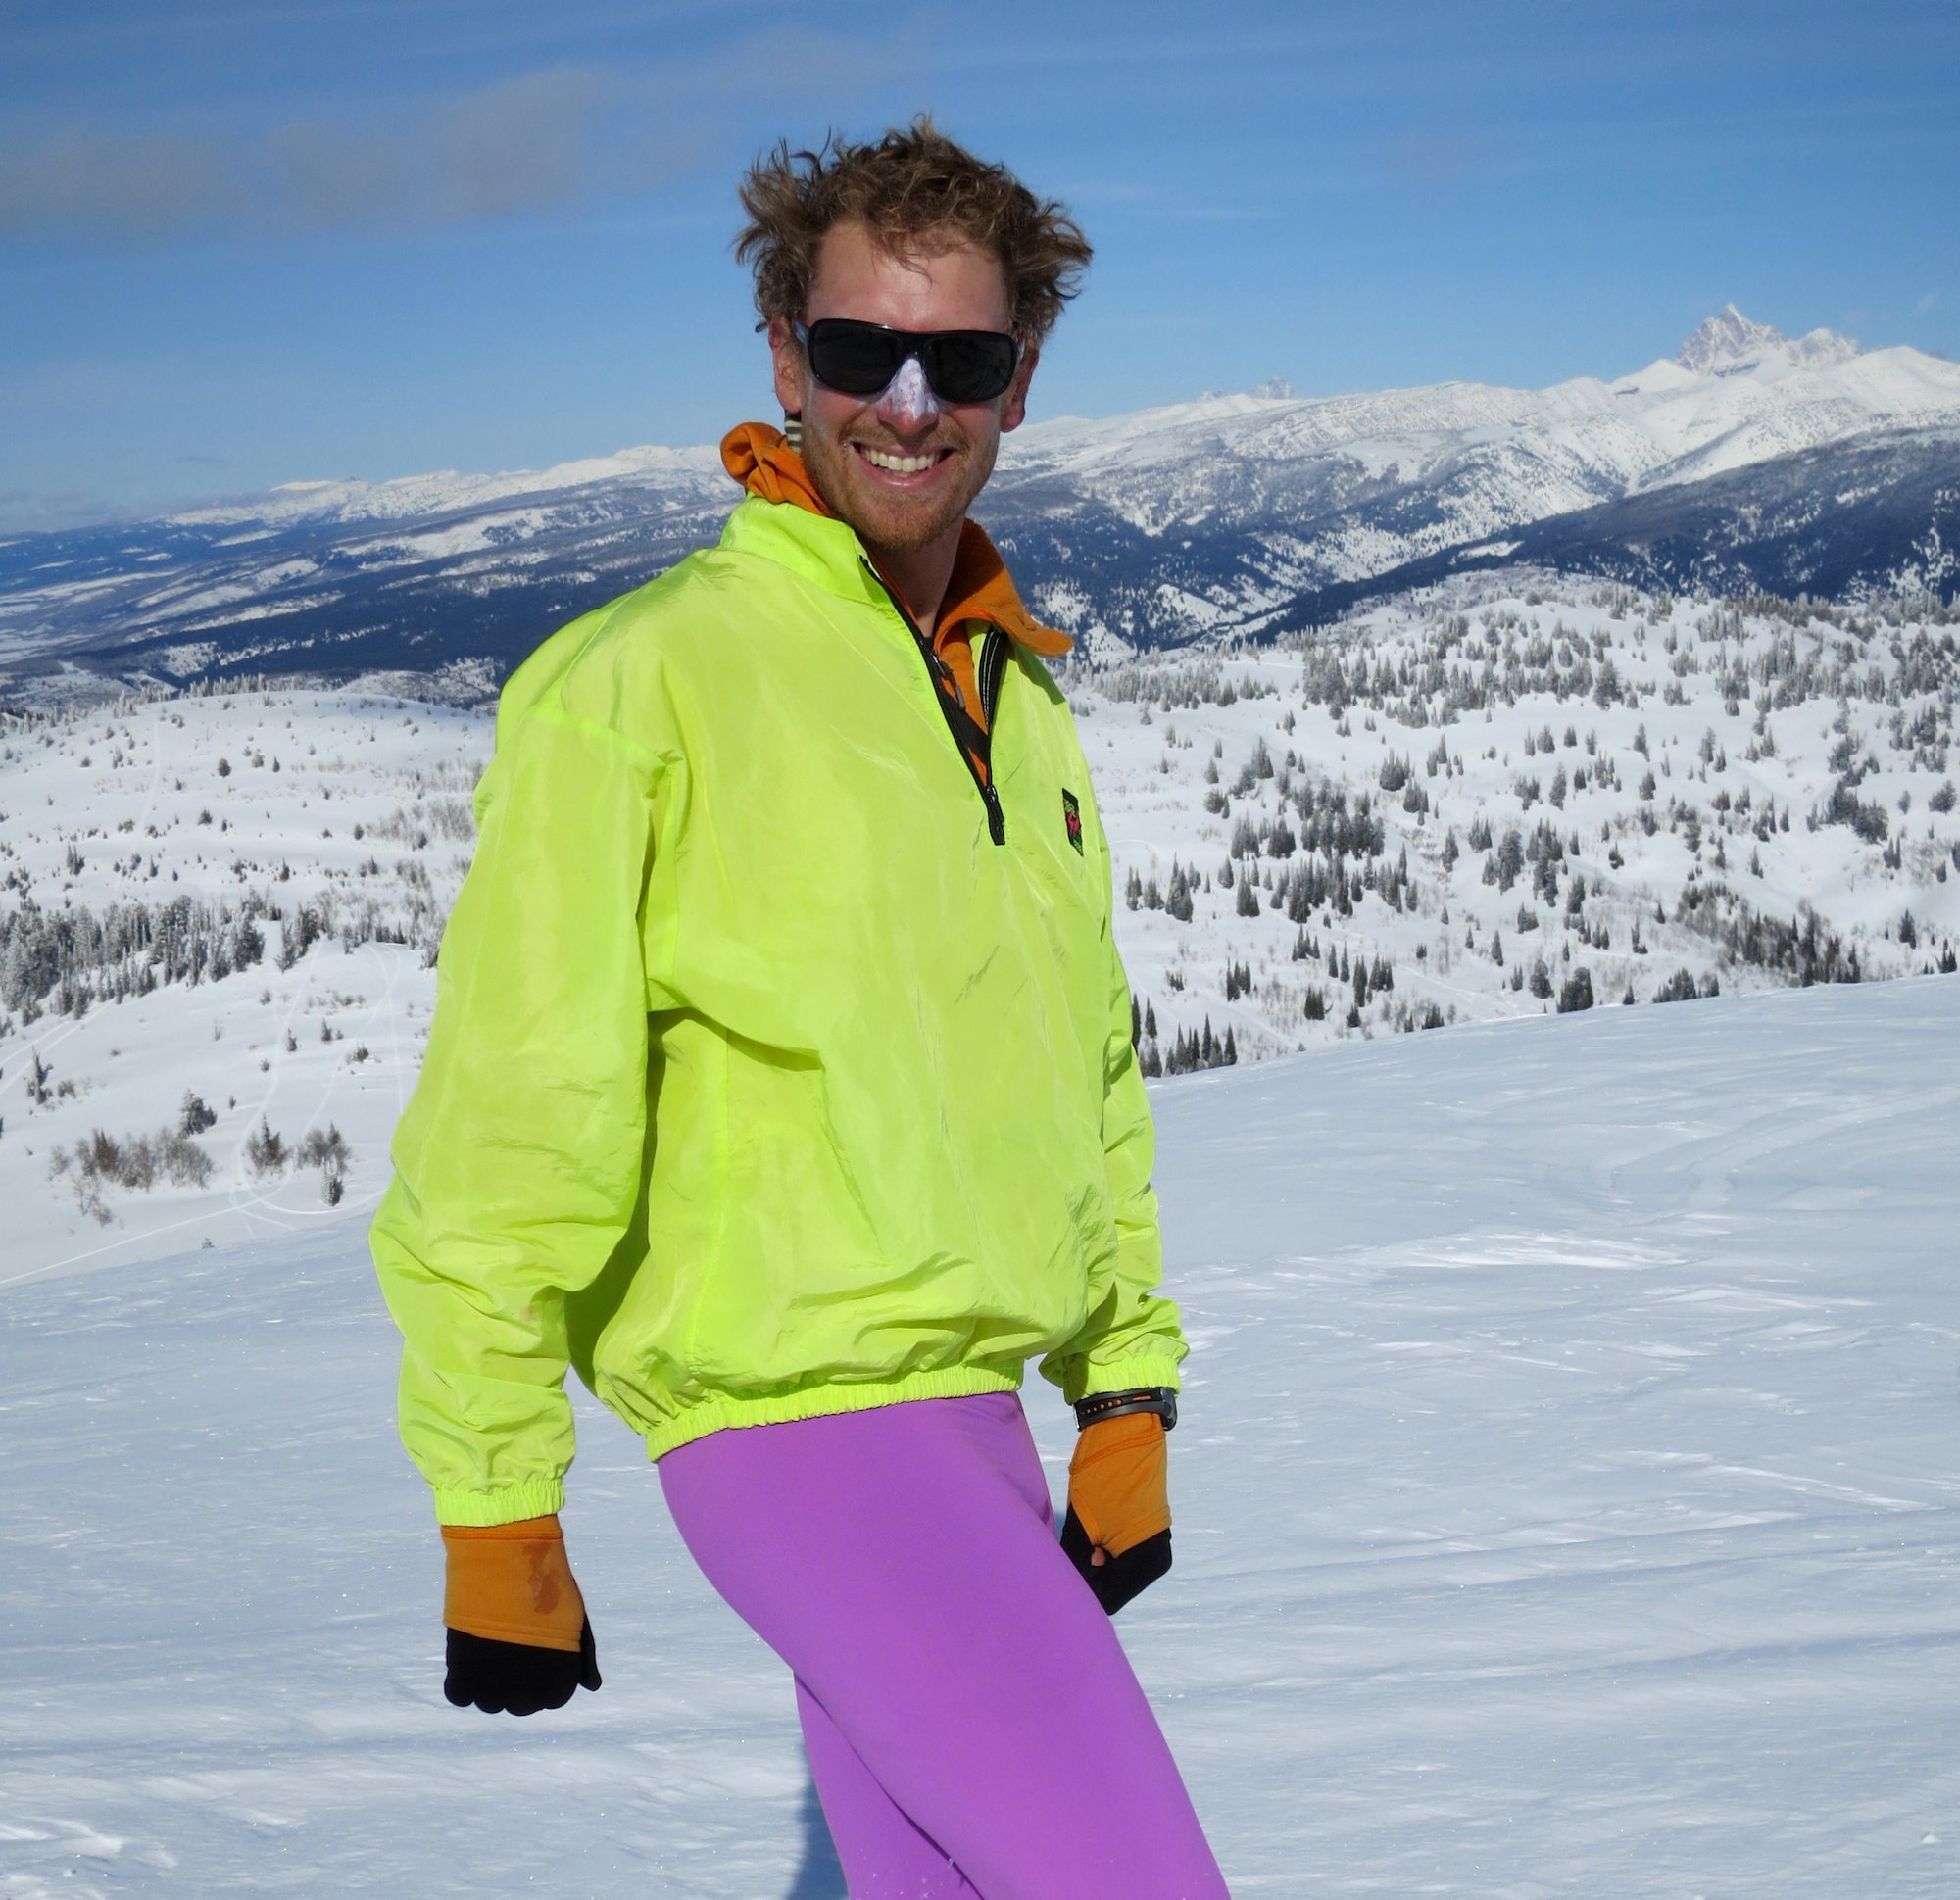 NOLS participant with fluorescent jacket and brightly colored tights models winter fashion